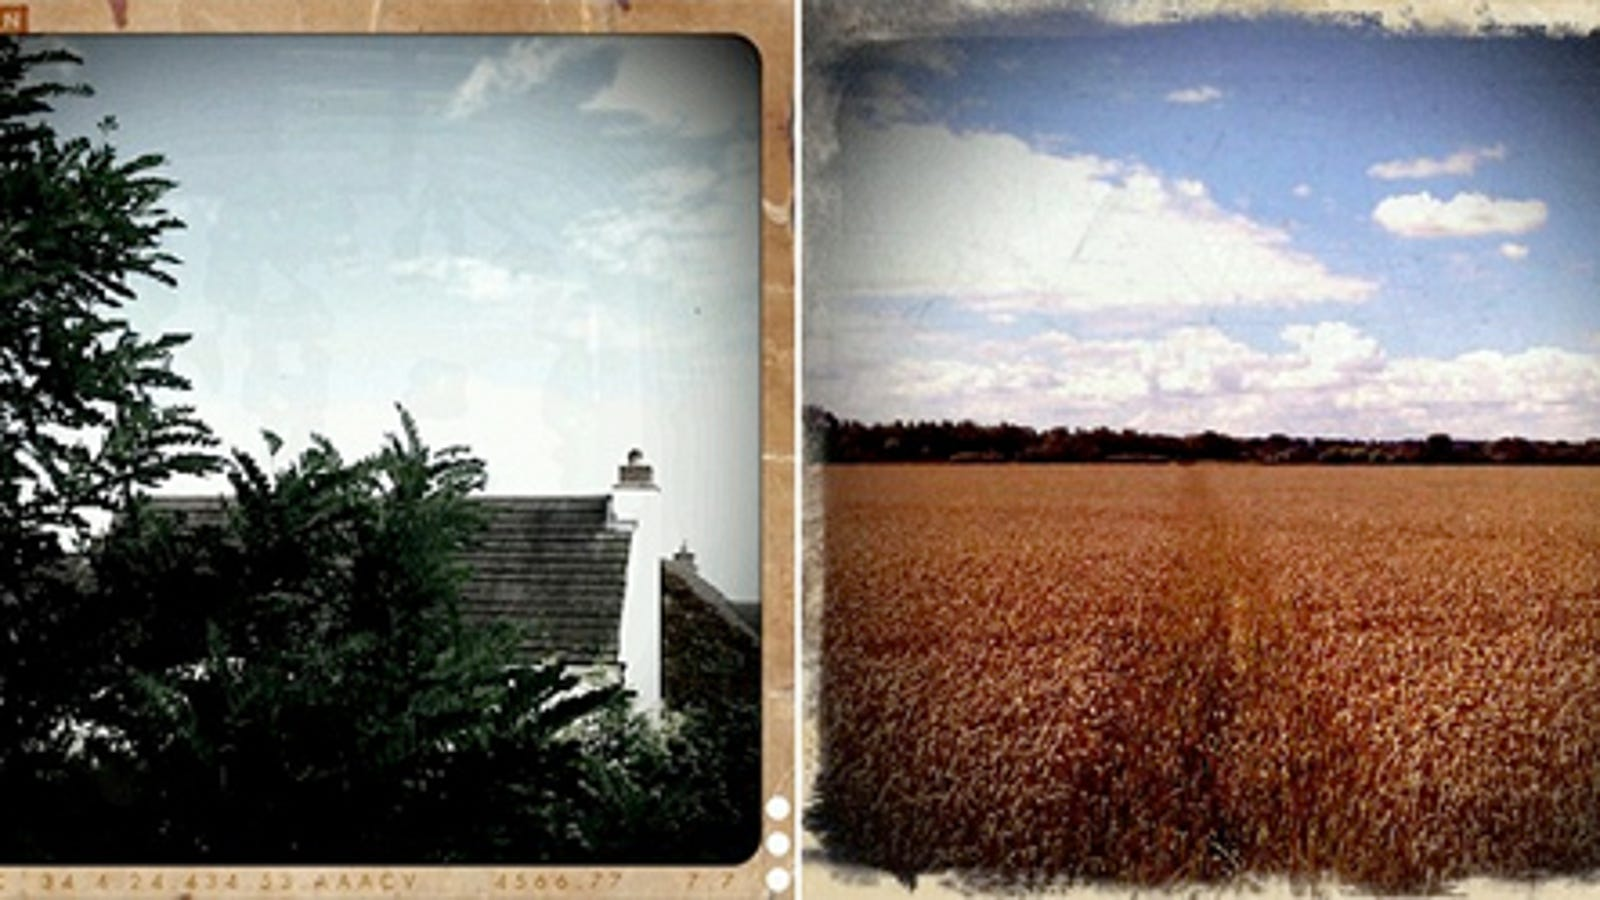 Retro Camera Android App Has Yet More Grainy Effects to Sample